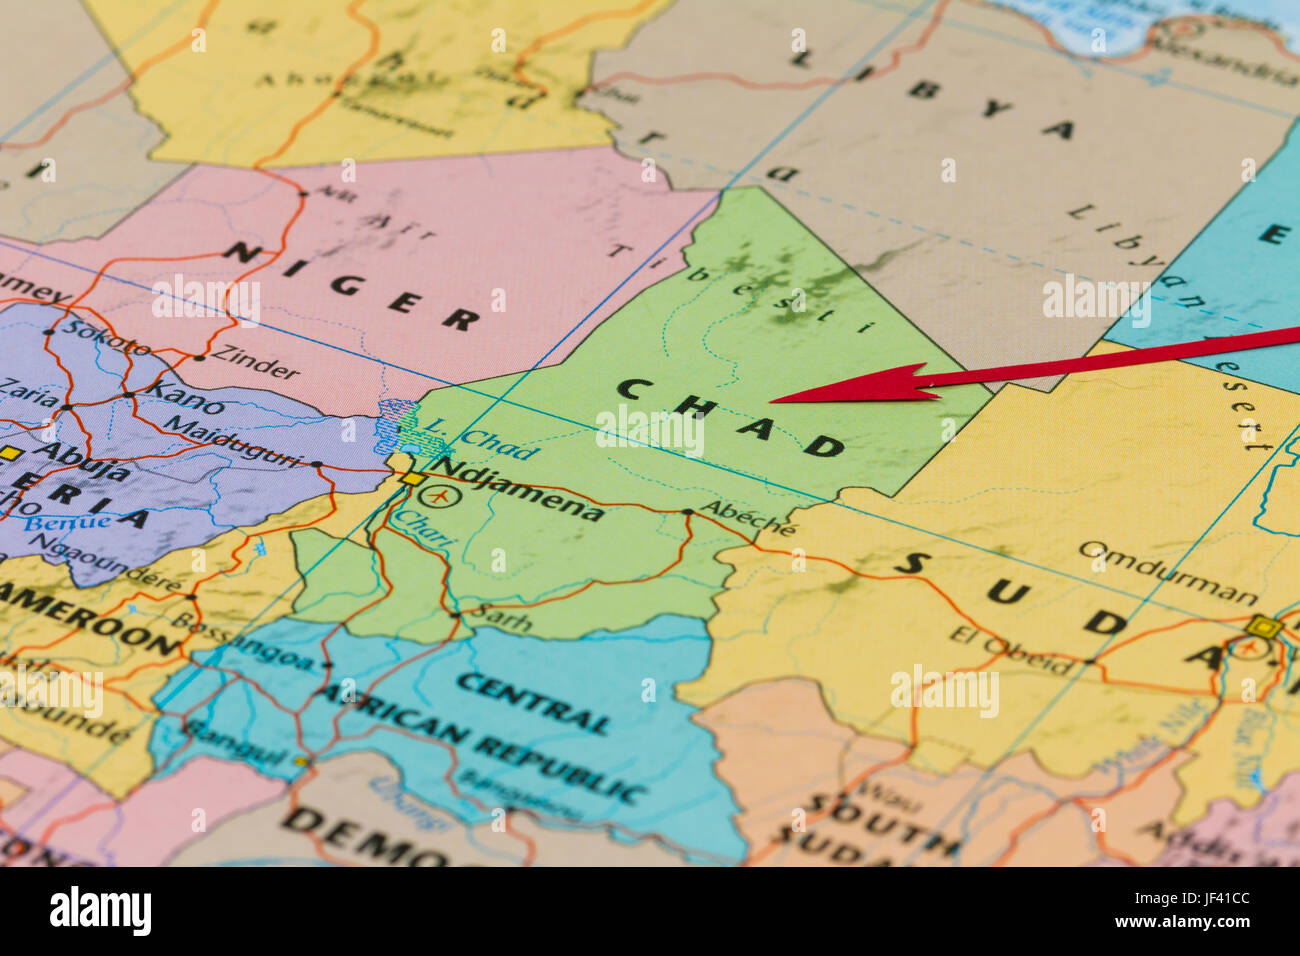 Photo of Chad. Country indicated by red arrow. Country on African continent. - Stock Image